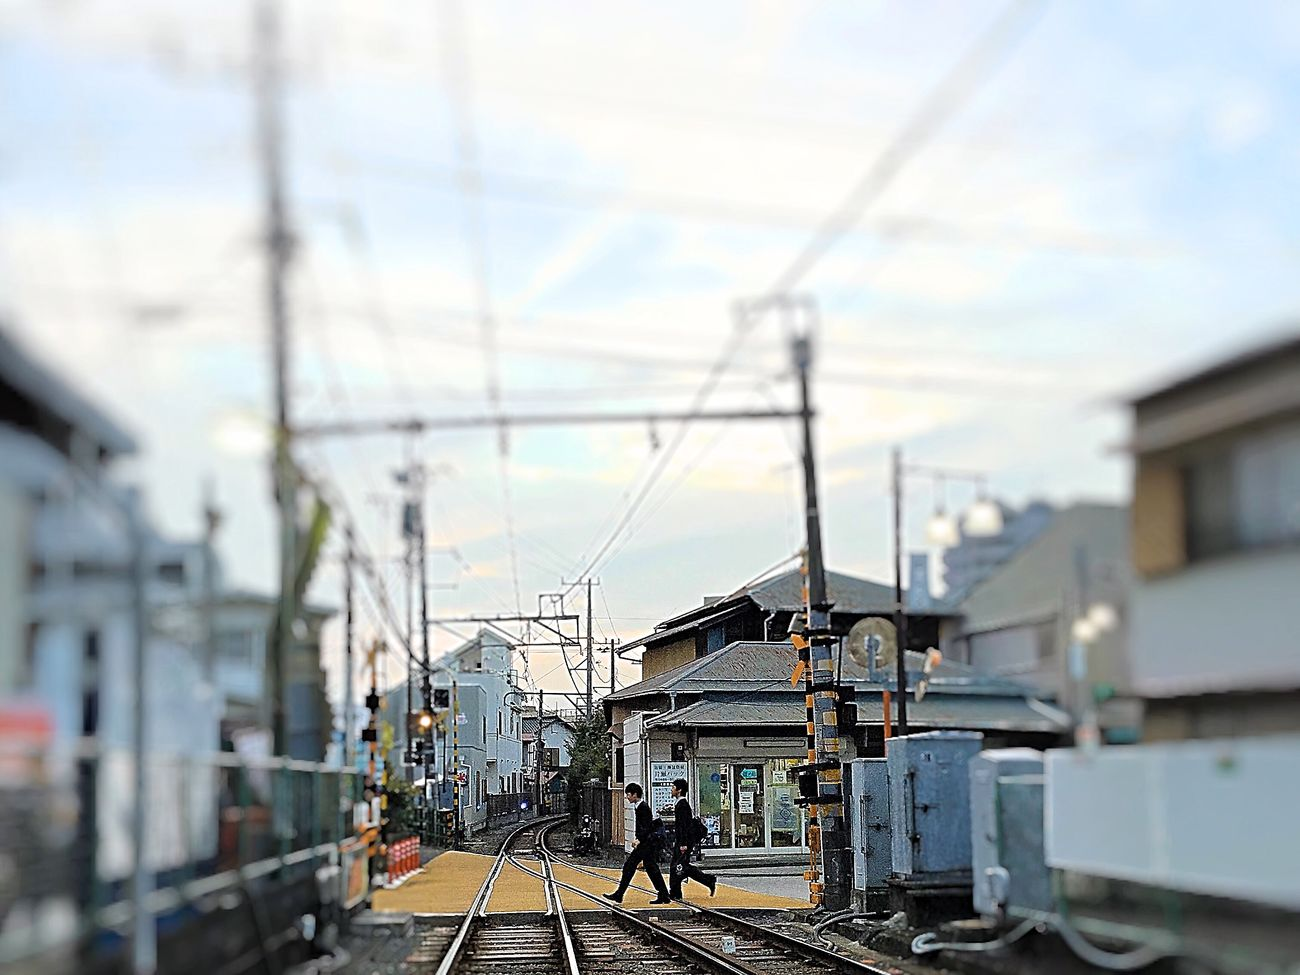 Landscape Transportation City Day Railroad Station Platform Sky People Traveling Scenics IPhoneography Walking Around Holiday Lifestyles Enjoying Life Iphoneonly Railway Japan EyeEm Gallery